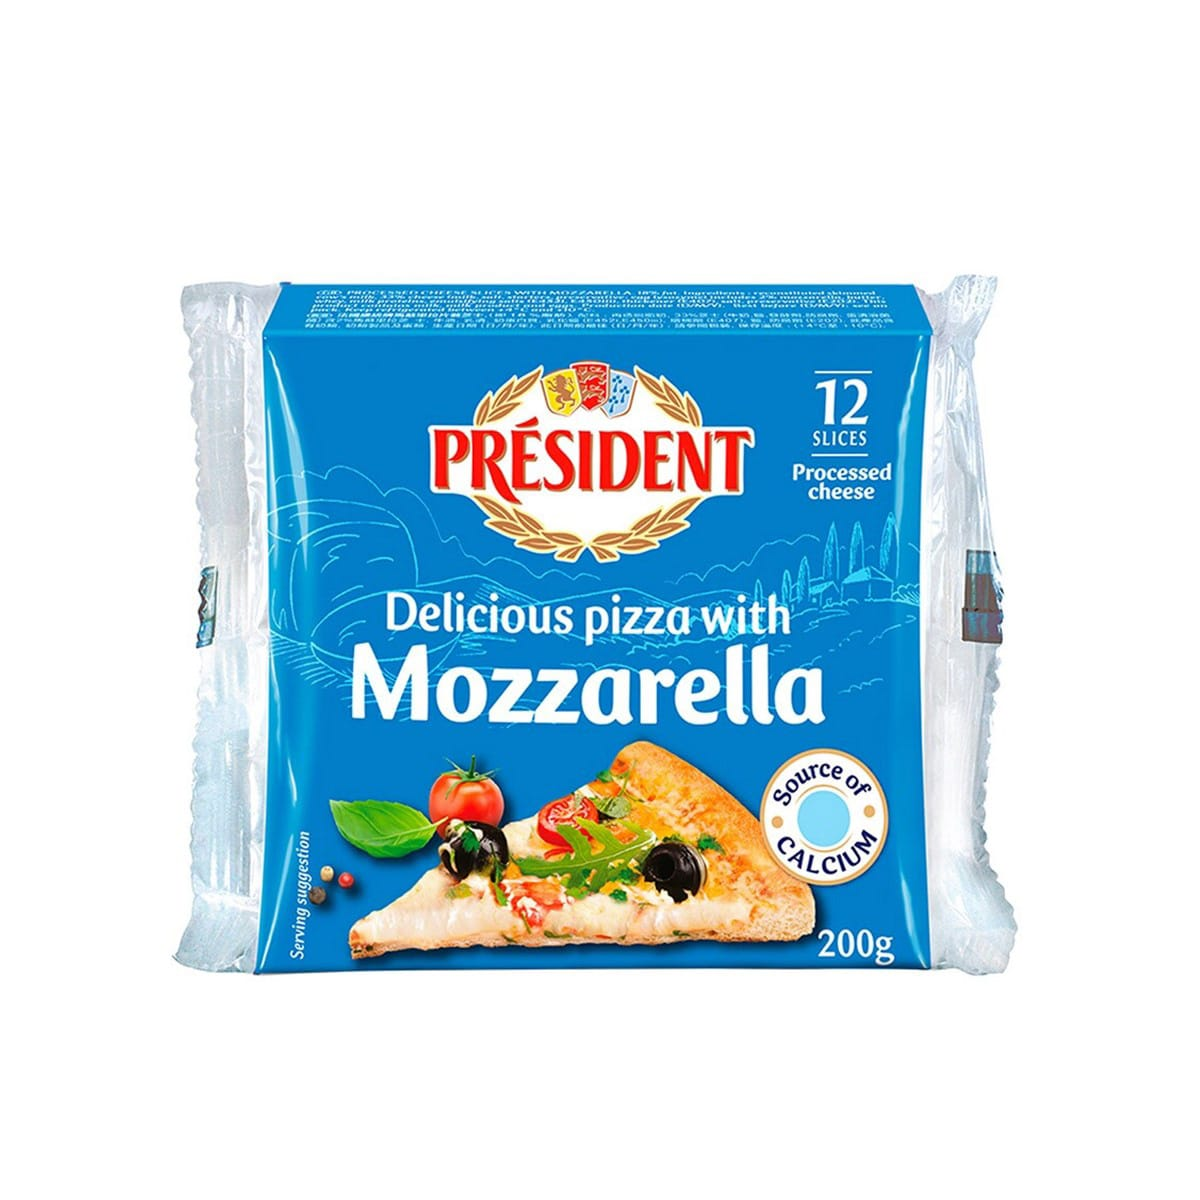 President Processed Cheese Slices With Mozzarella For Pizza Kcg Corporation